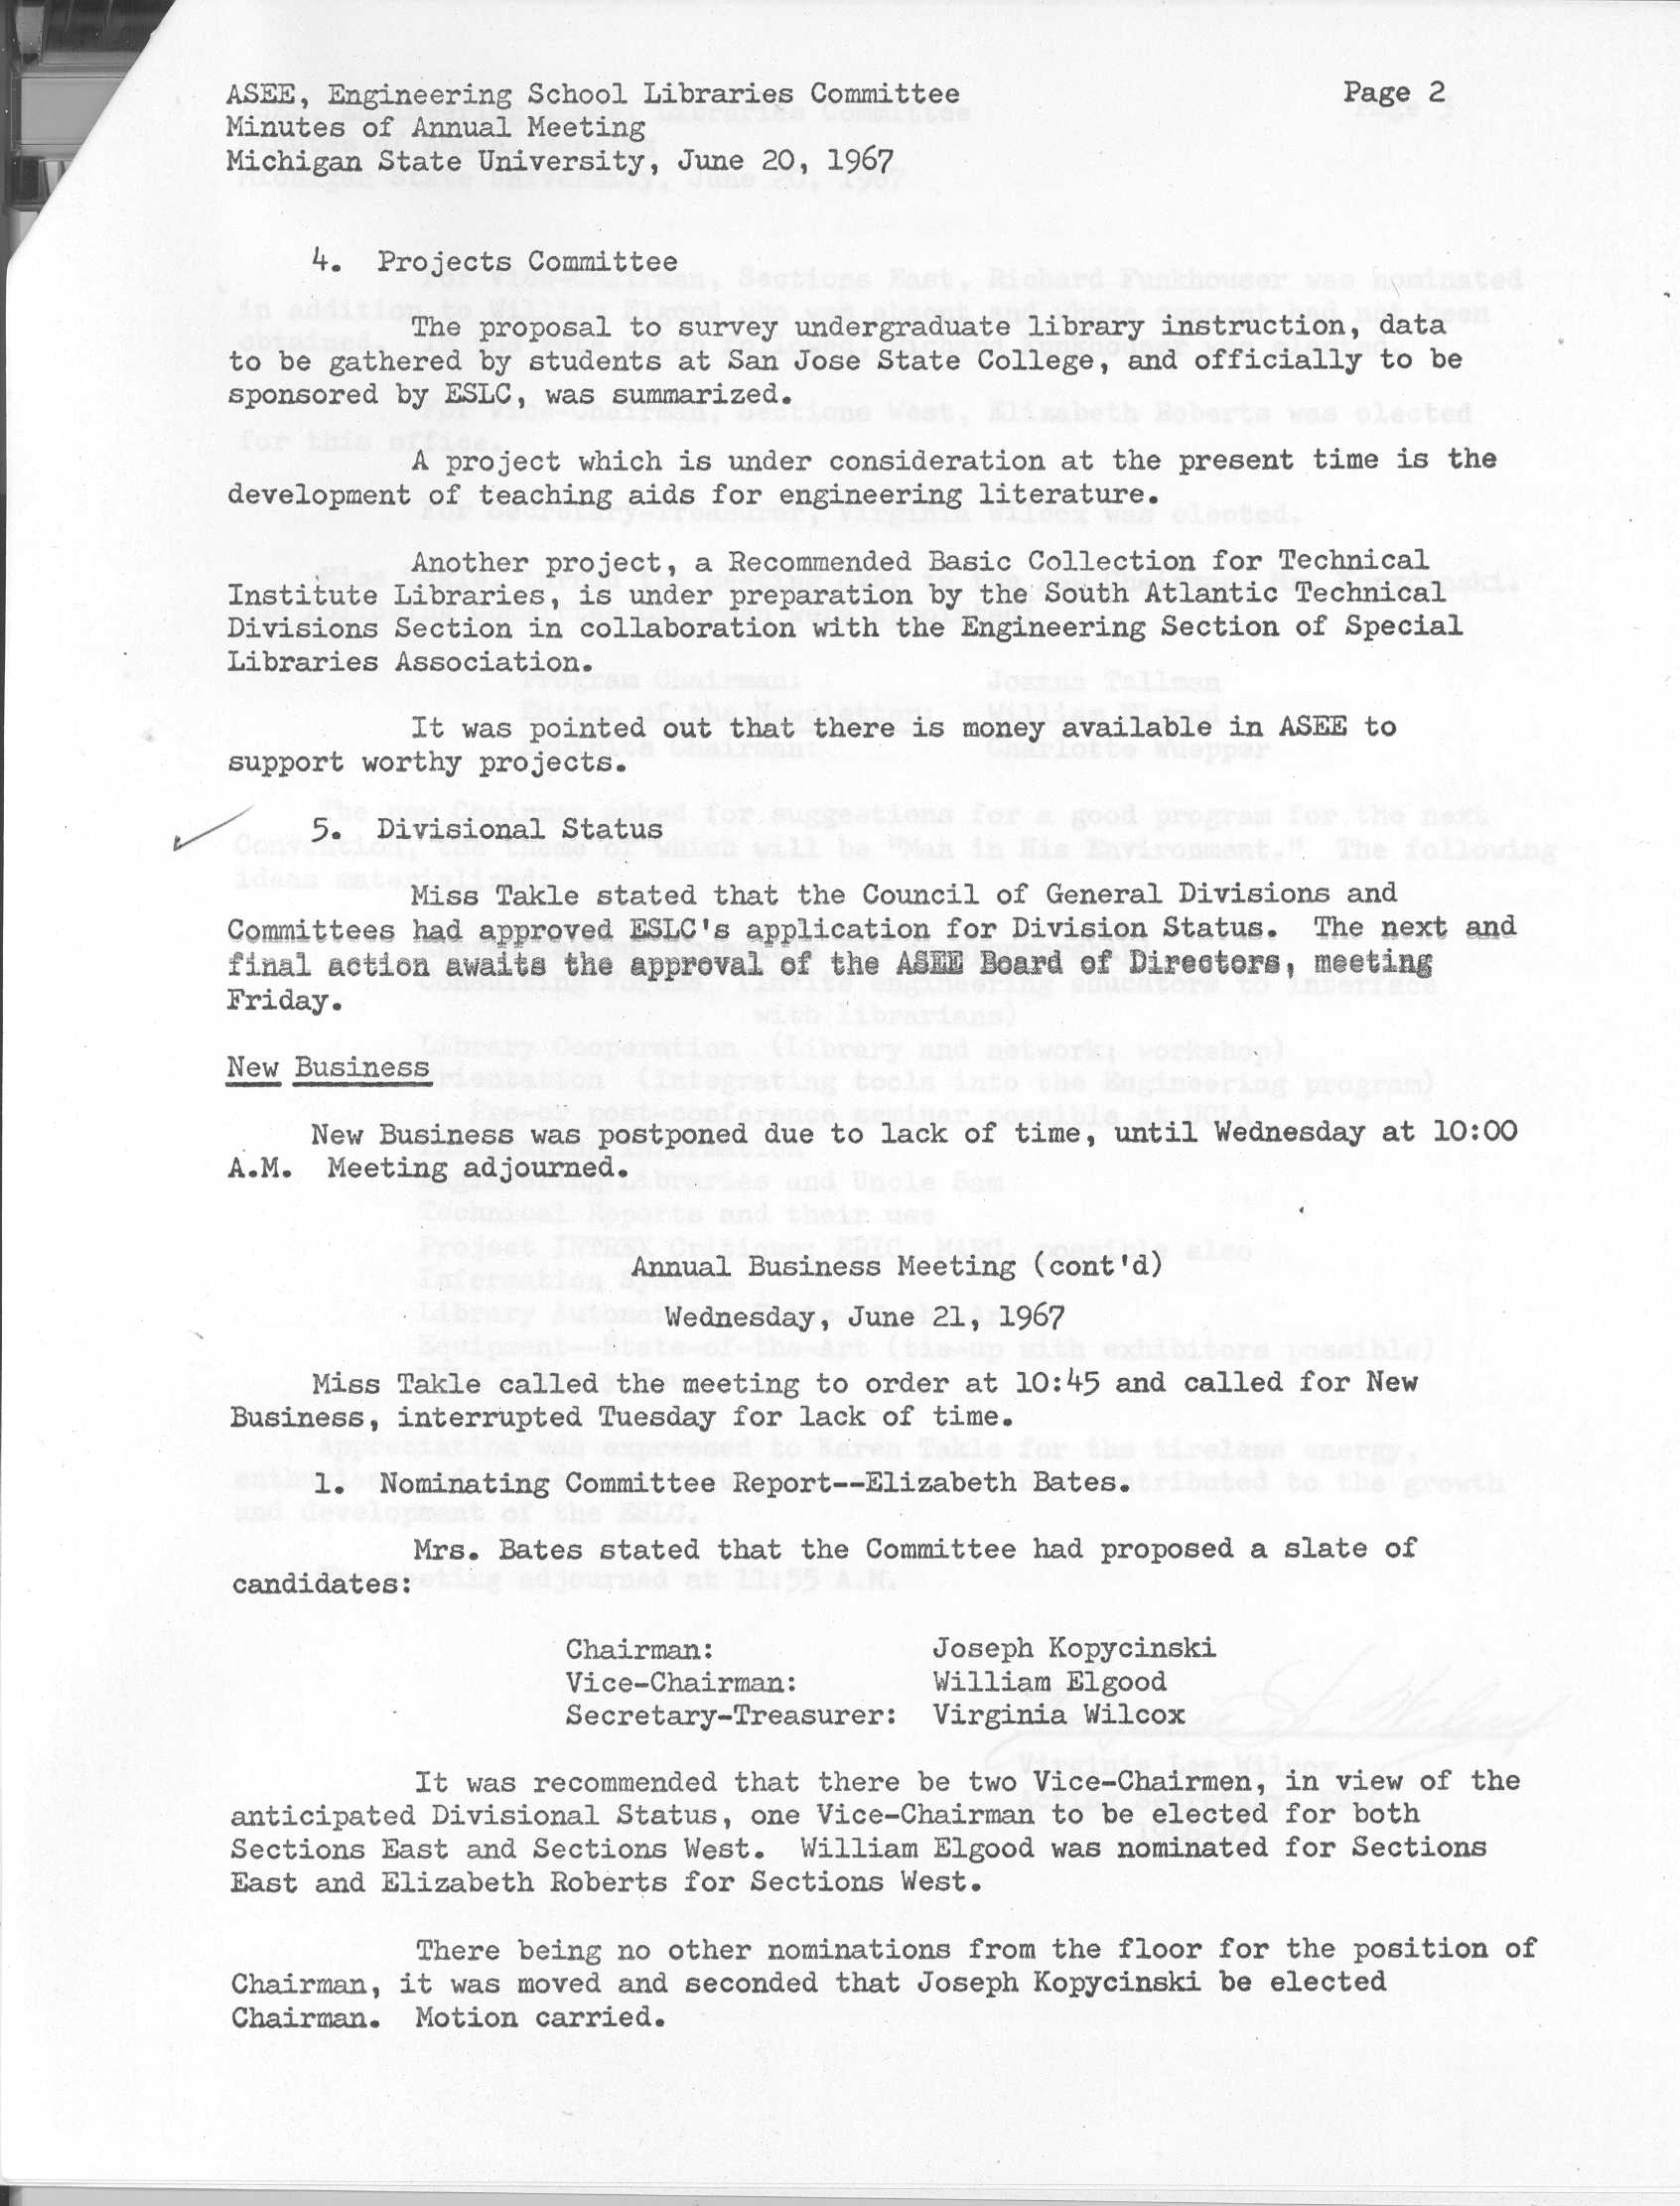 Announcement of division status (1967)